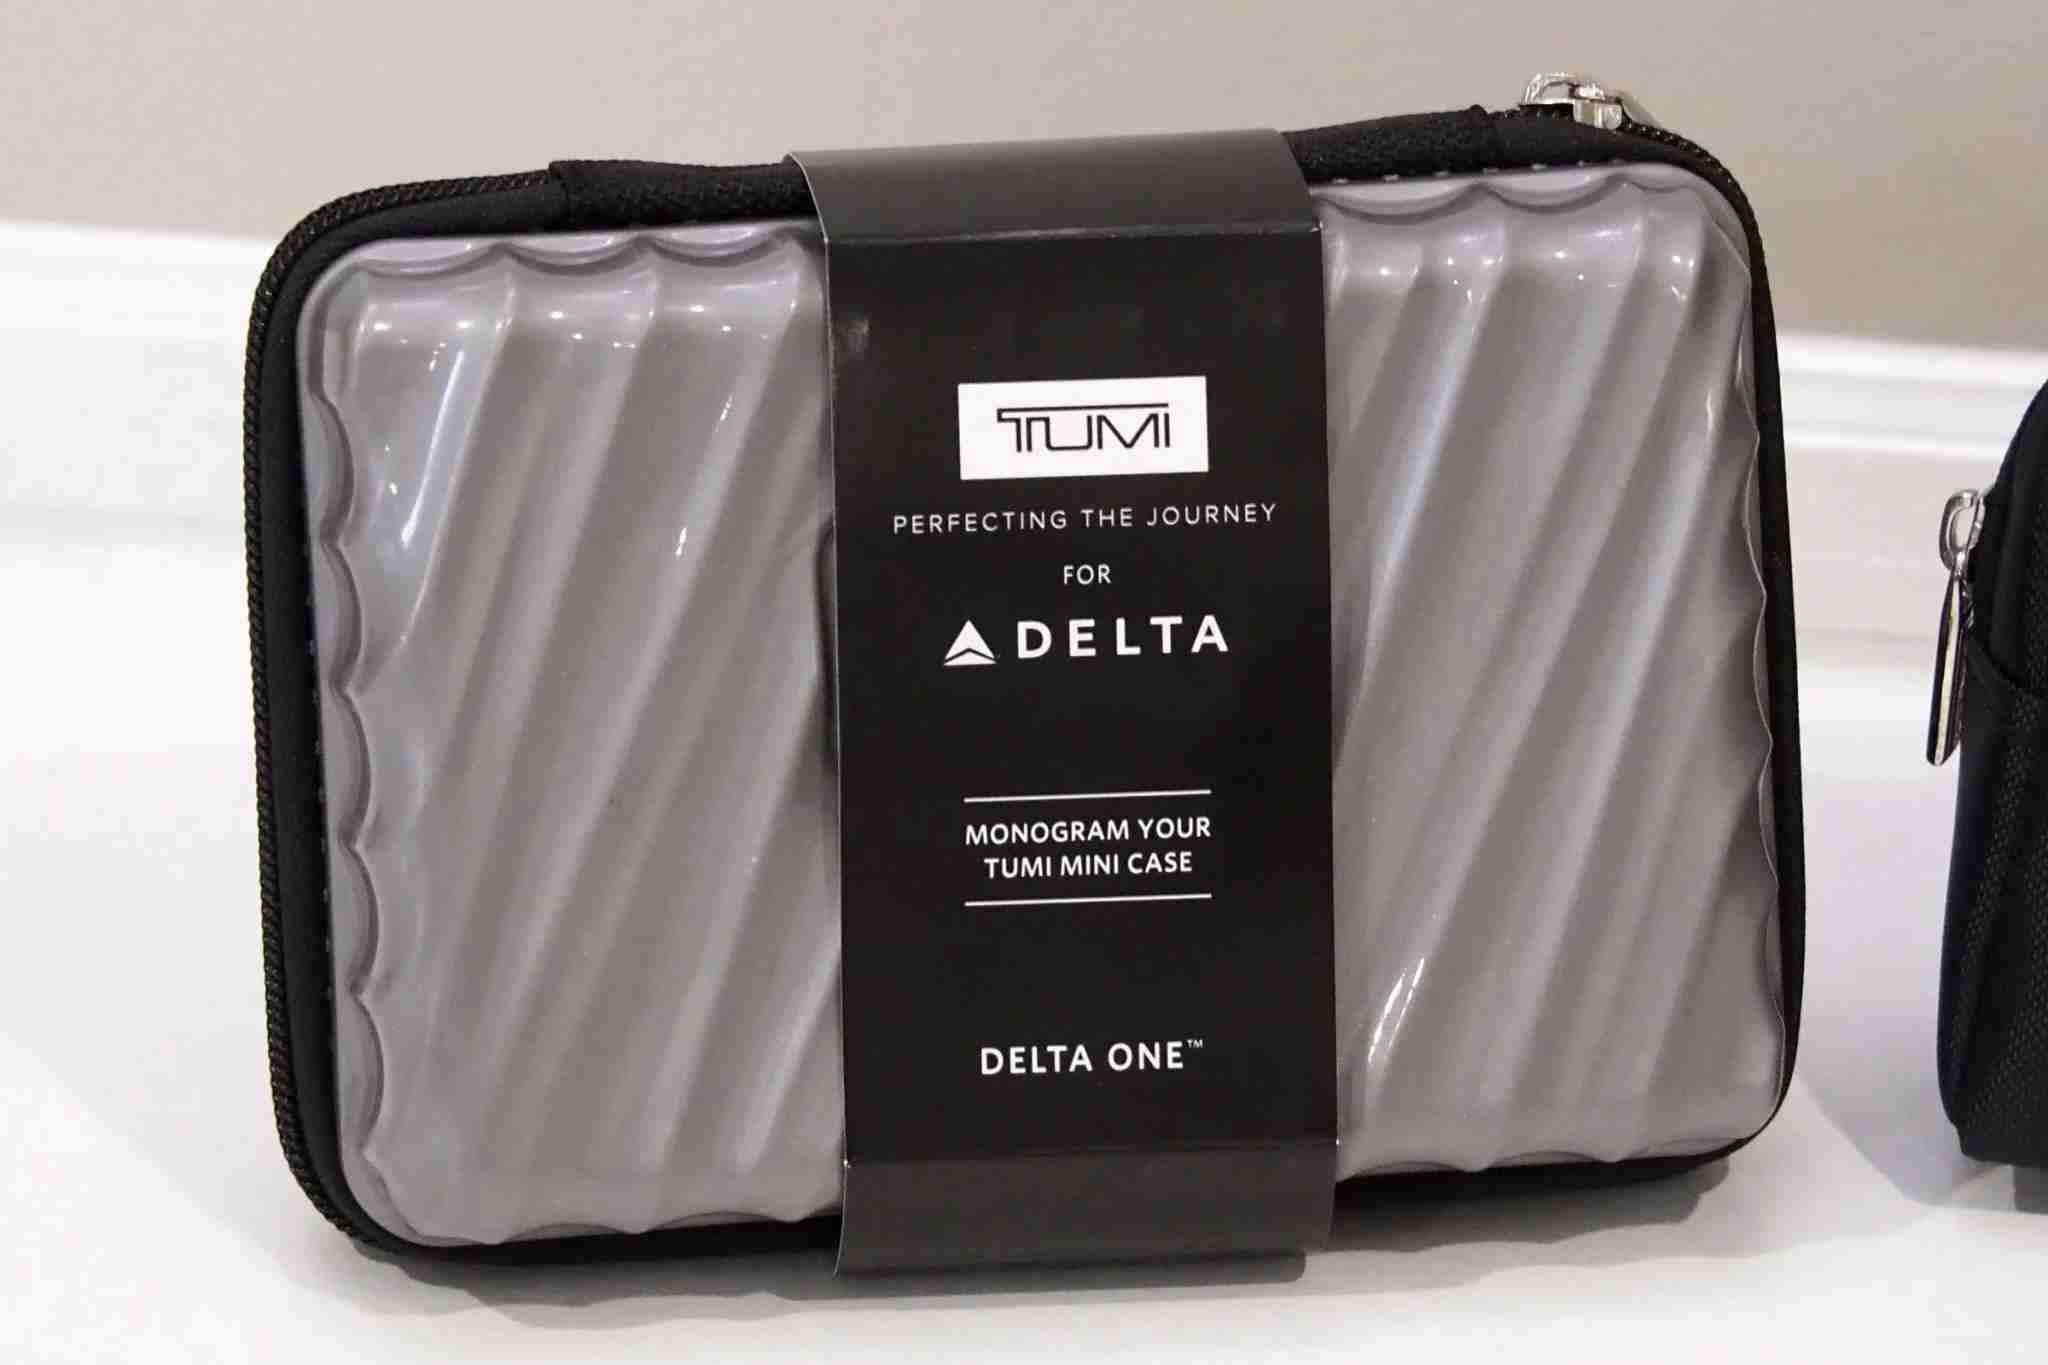 Delta One Premium Select Amenity Kits